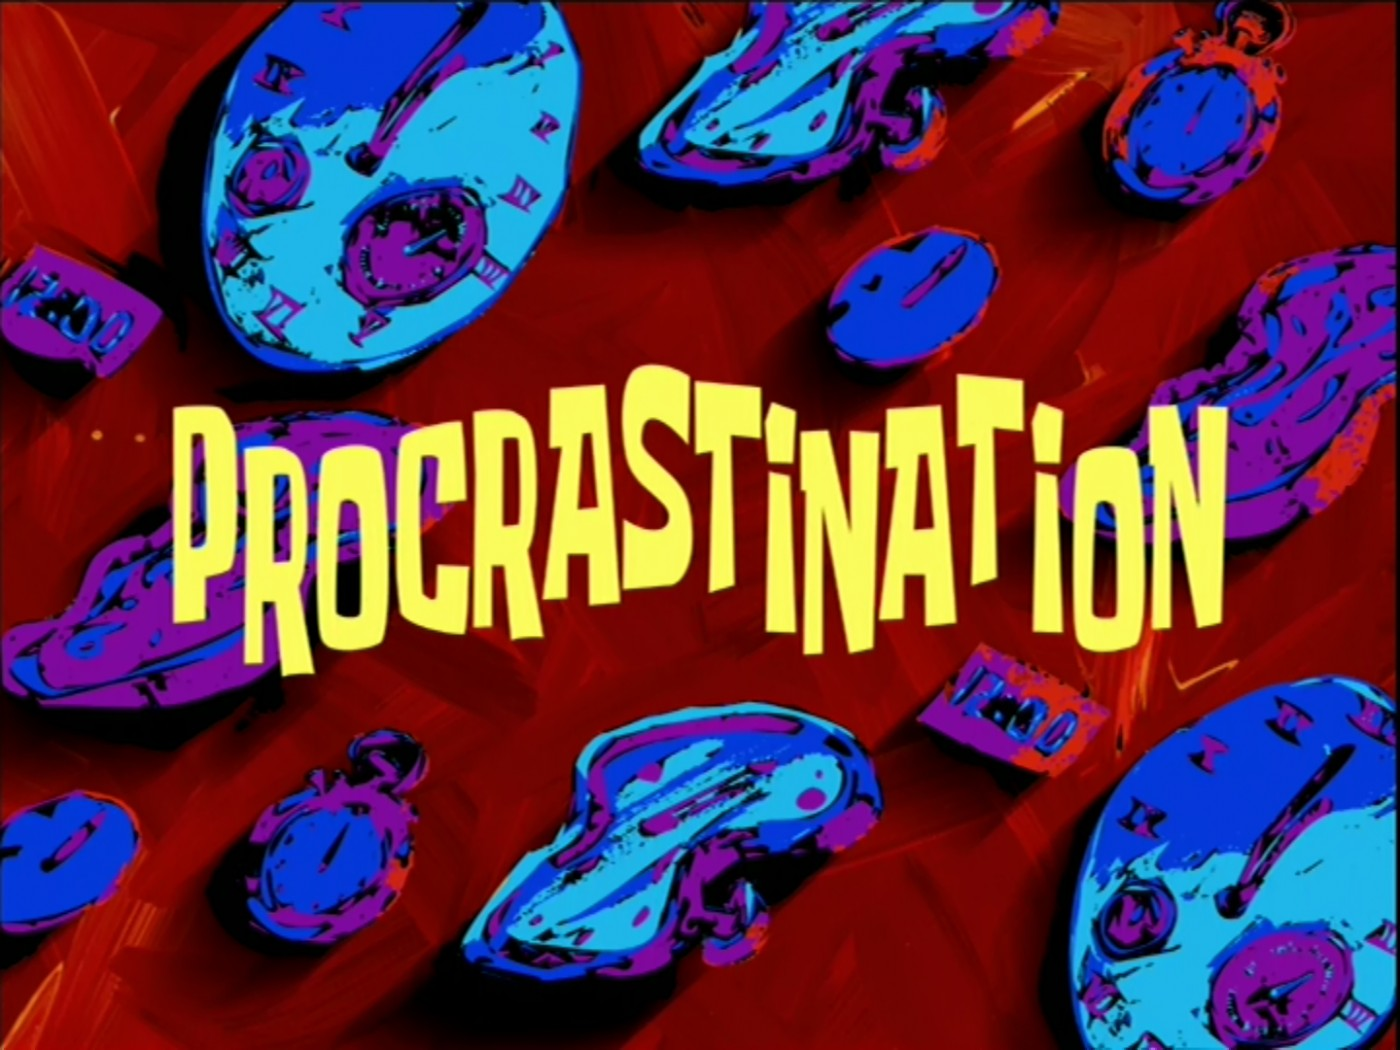 009 Procrastinationtranscript Encyclopedia Spongebobia Fandom Spongebob Writing Essay The Latestcb201806220 Gif Font For Hours Meme Rap Surprising Pencil 1400